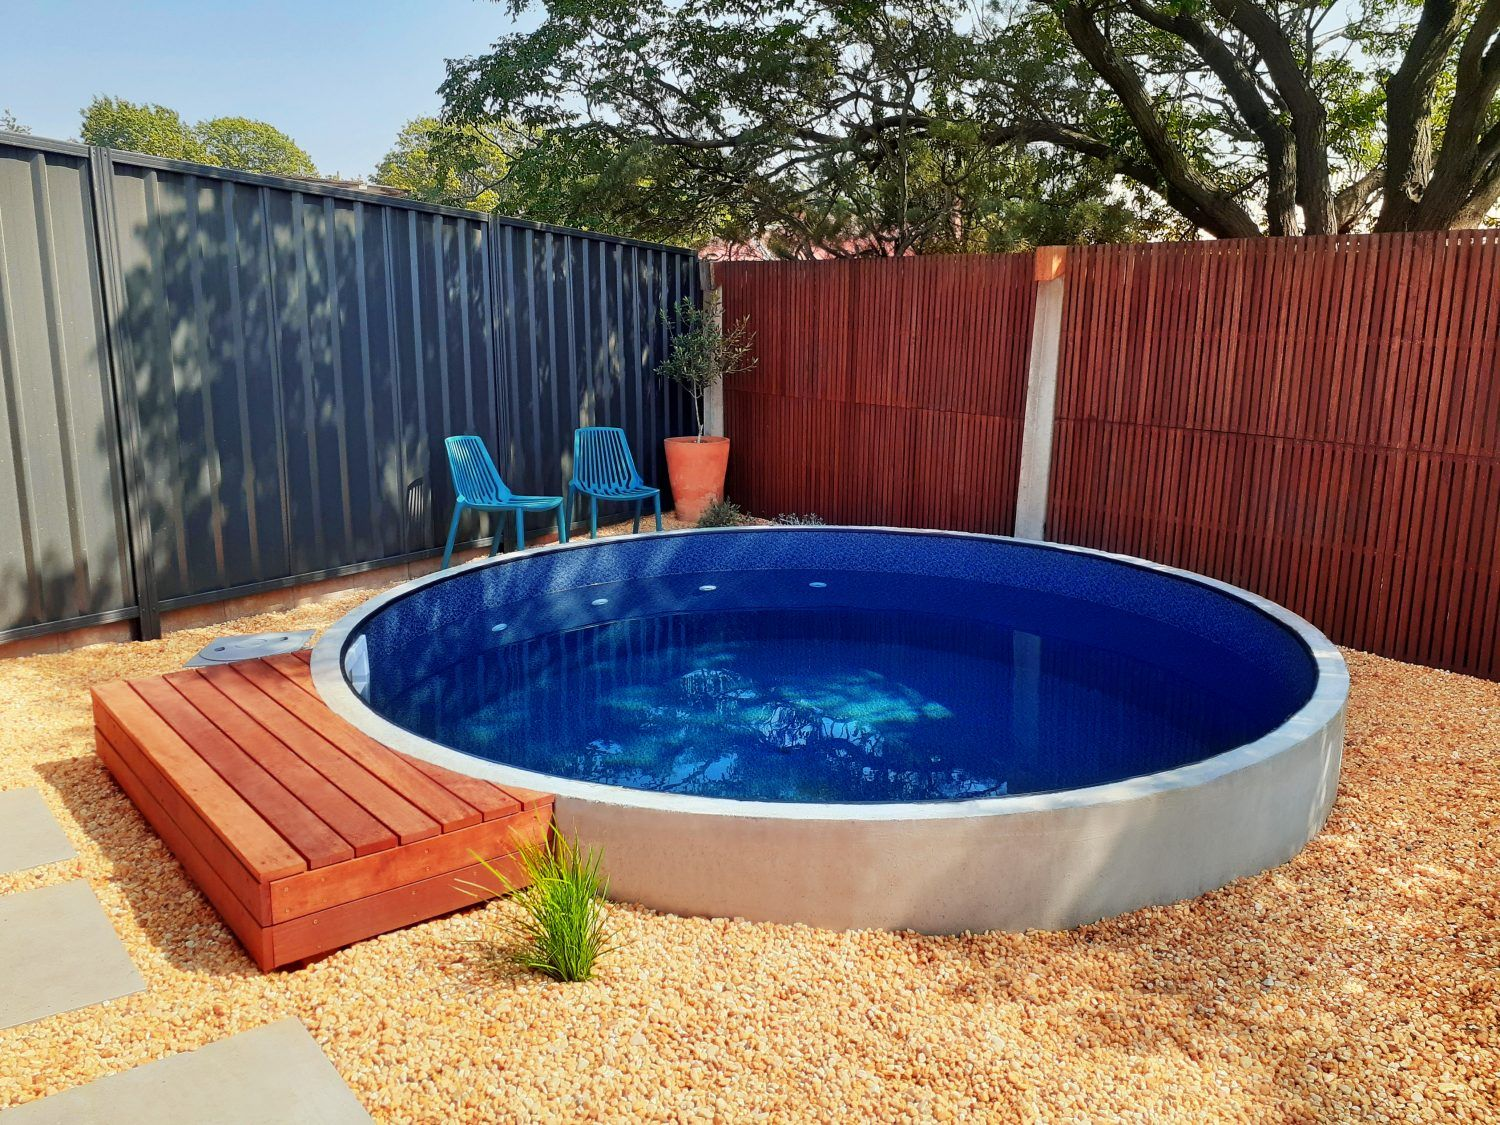 Nova Goulburn Nsw December 2019 In 2020 Plunge Pool Pool